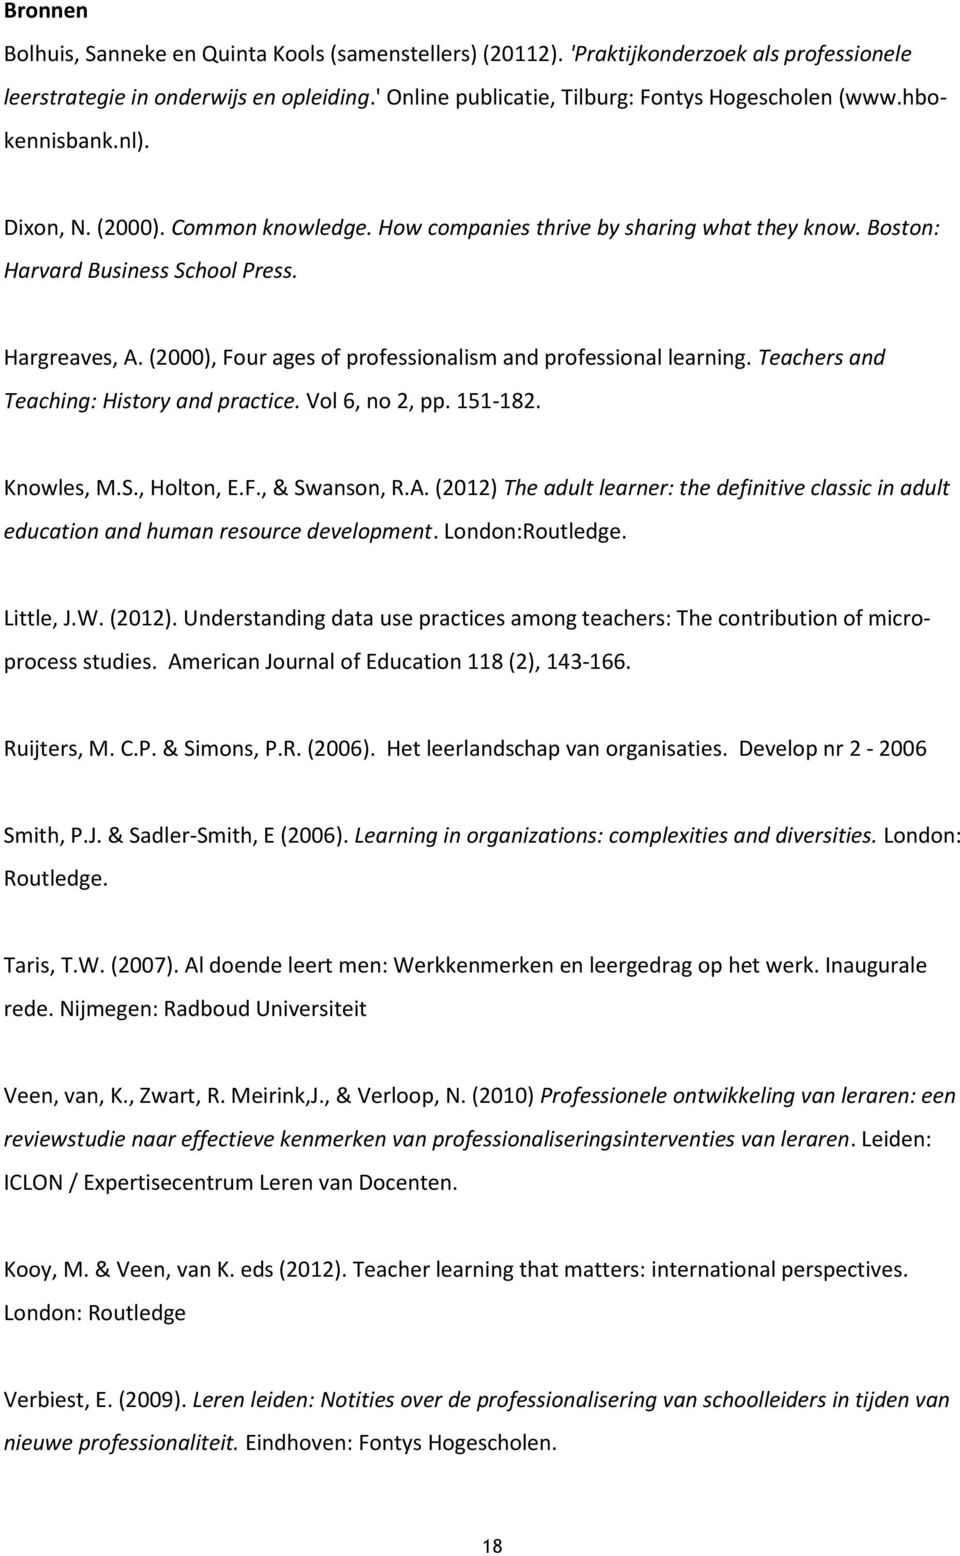 (2000), Four ages of professionalism and professional learning. Teachers and Teaching: History and practice. Vol 6, no 2, pp. 151-182. Knowles, M.S., Holton, E.F., & Swanson, R.A.